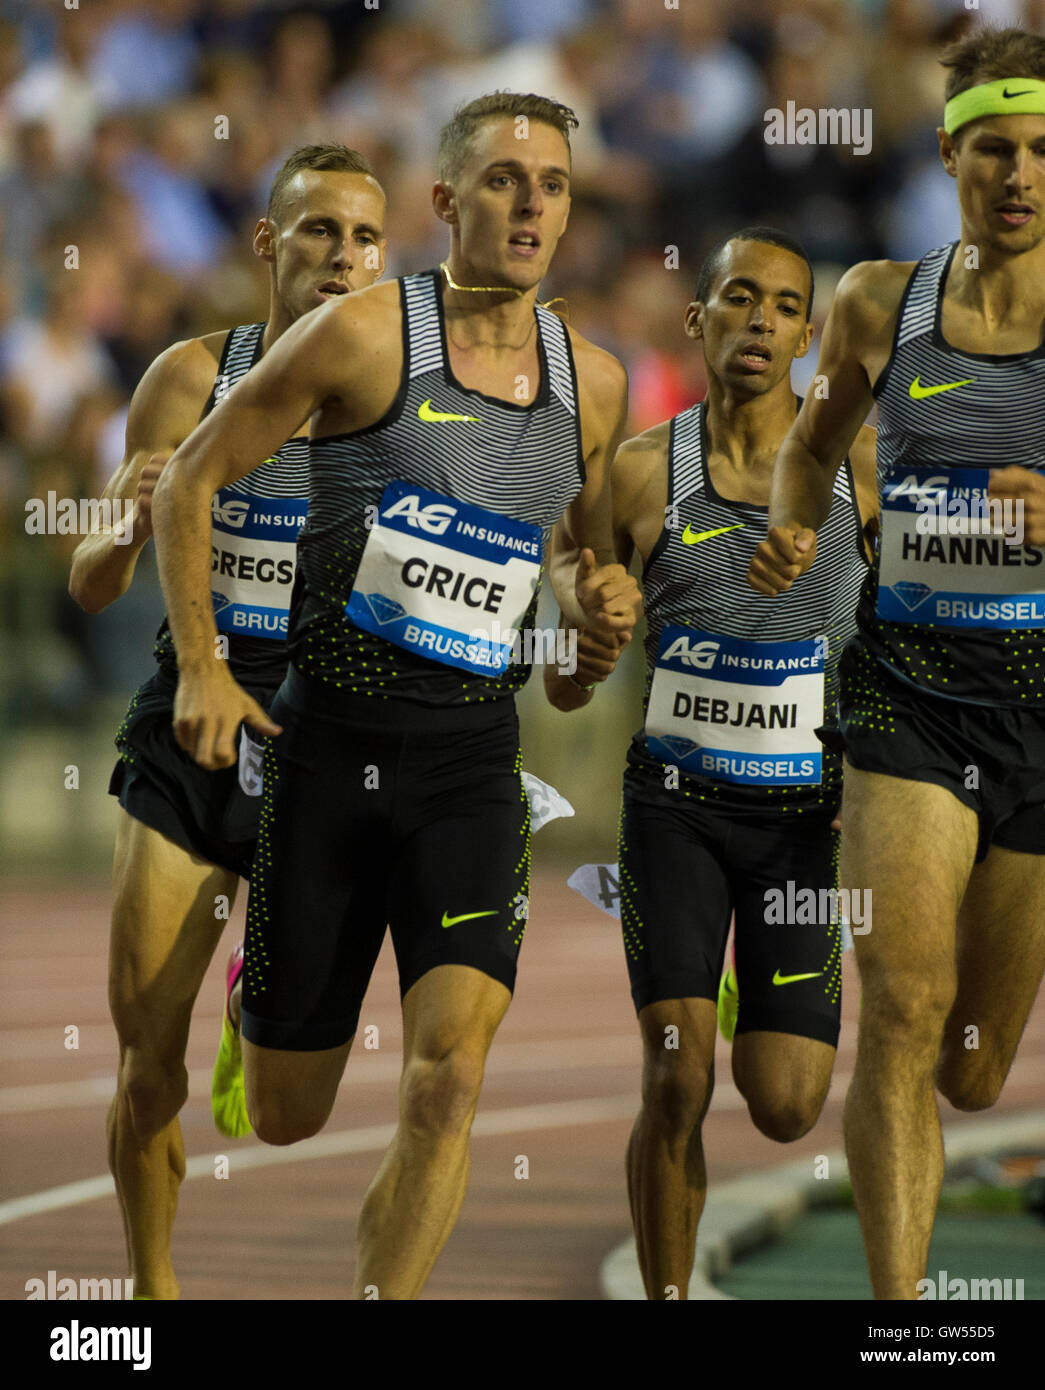 BRUSSELS, BELGIUM - SEPTEMBER 9:  Charlie Grice competing in the Men's 1500m at the AG Insurance Memorial Van - Stock Image